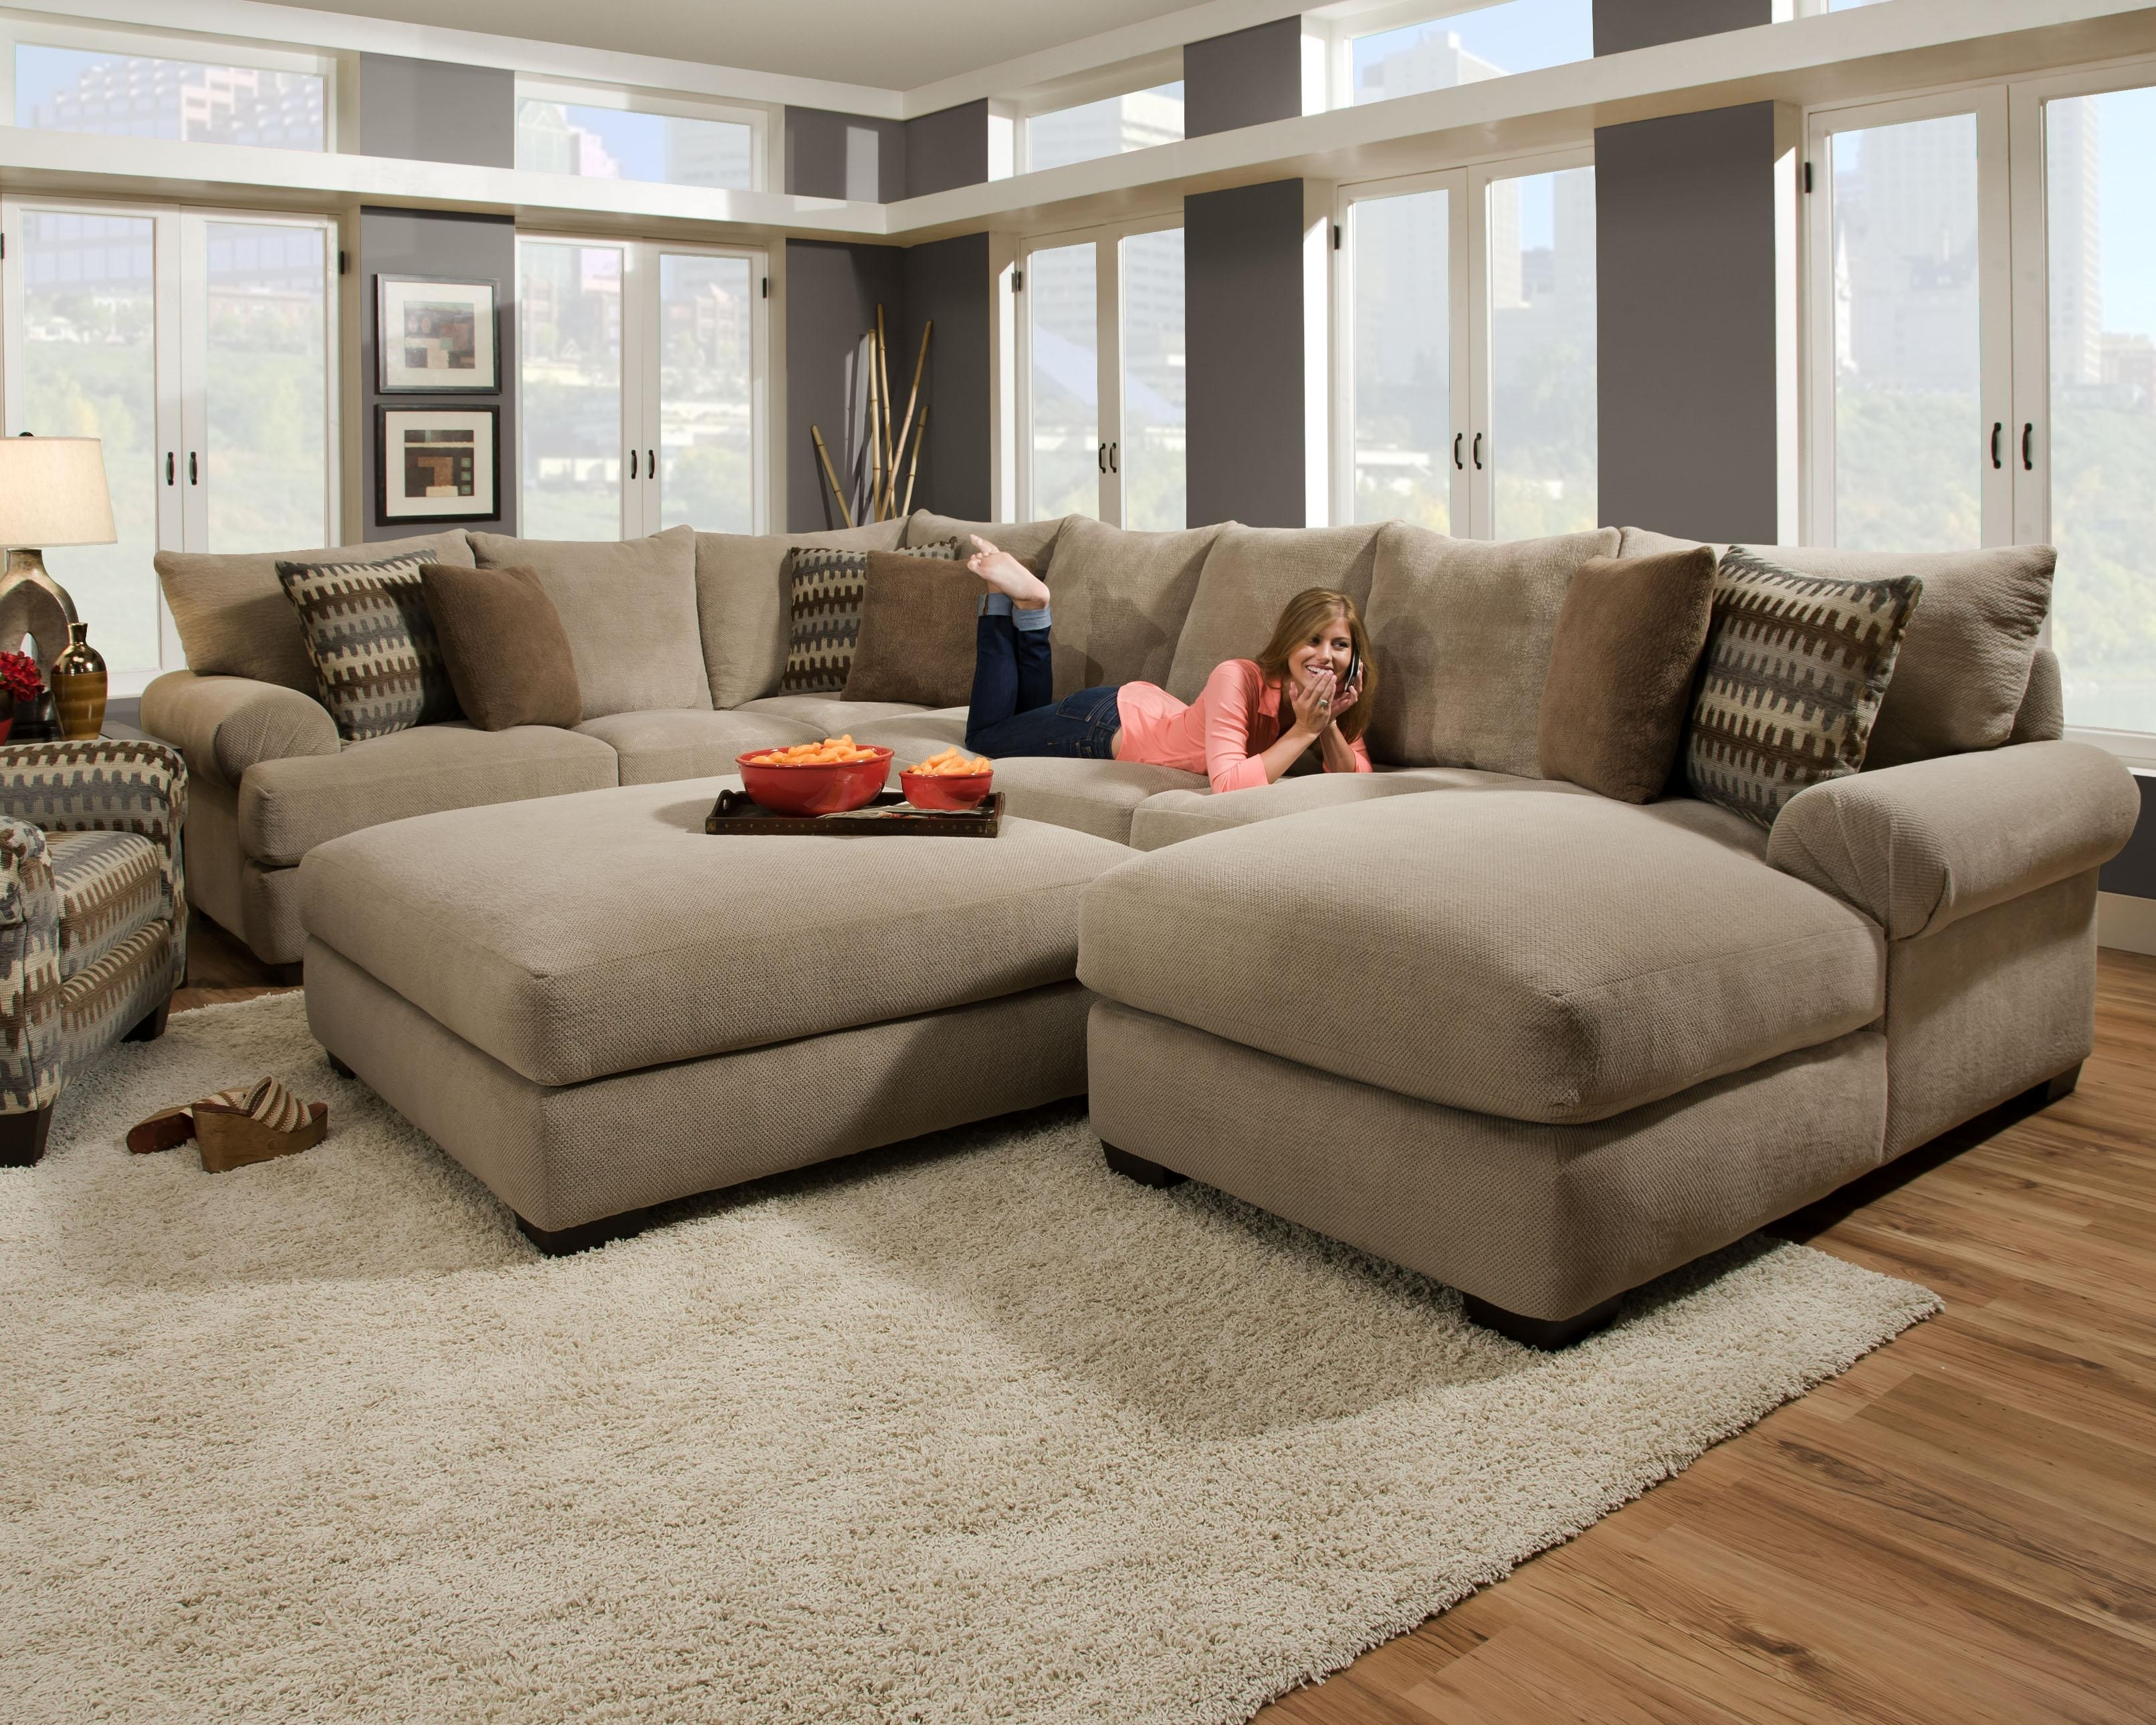 Corinthian 61A0 Sectional Sofa With Right Side Chaise | Furniture Throughout Greenville Nc Sectional Sofas (View 4 of 10)